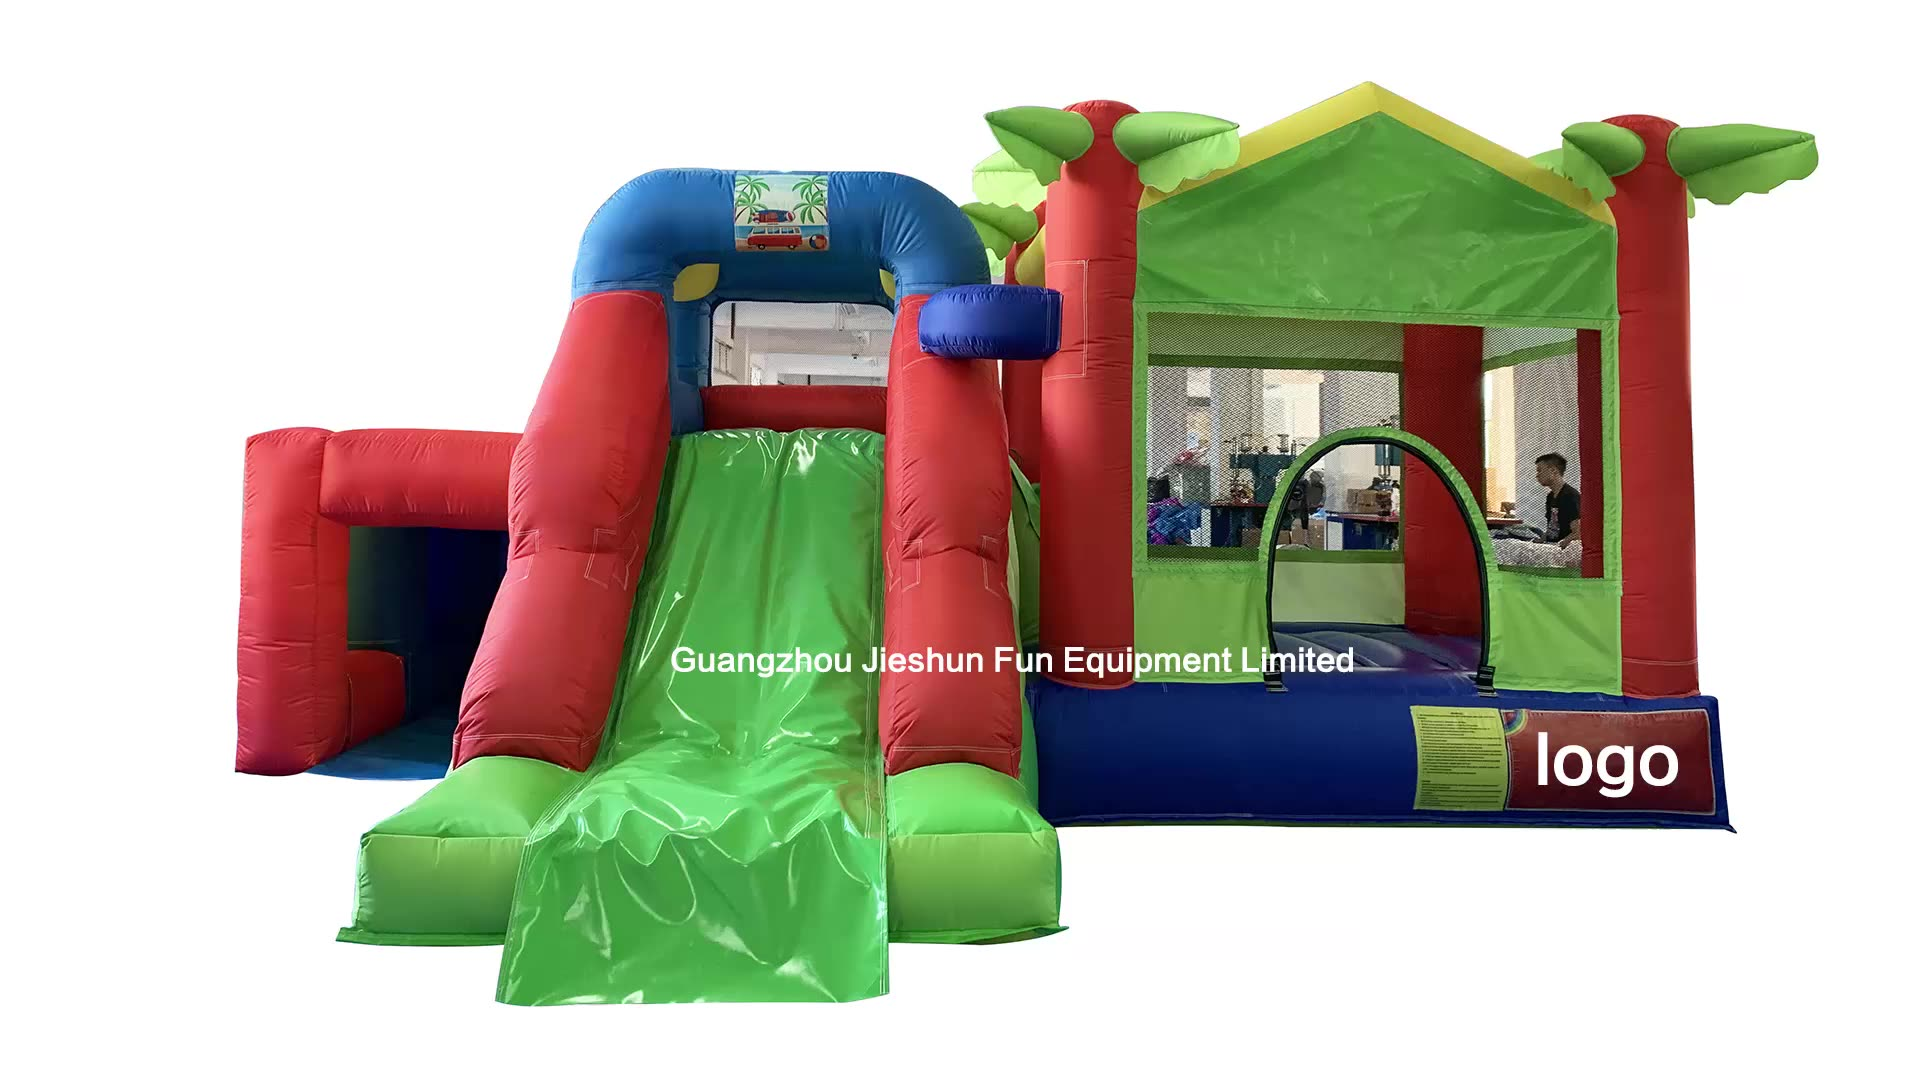 Commercial usage outdoor inflatable disco jumping bouncy inflatable castle combo slide for kids outdoor games